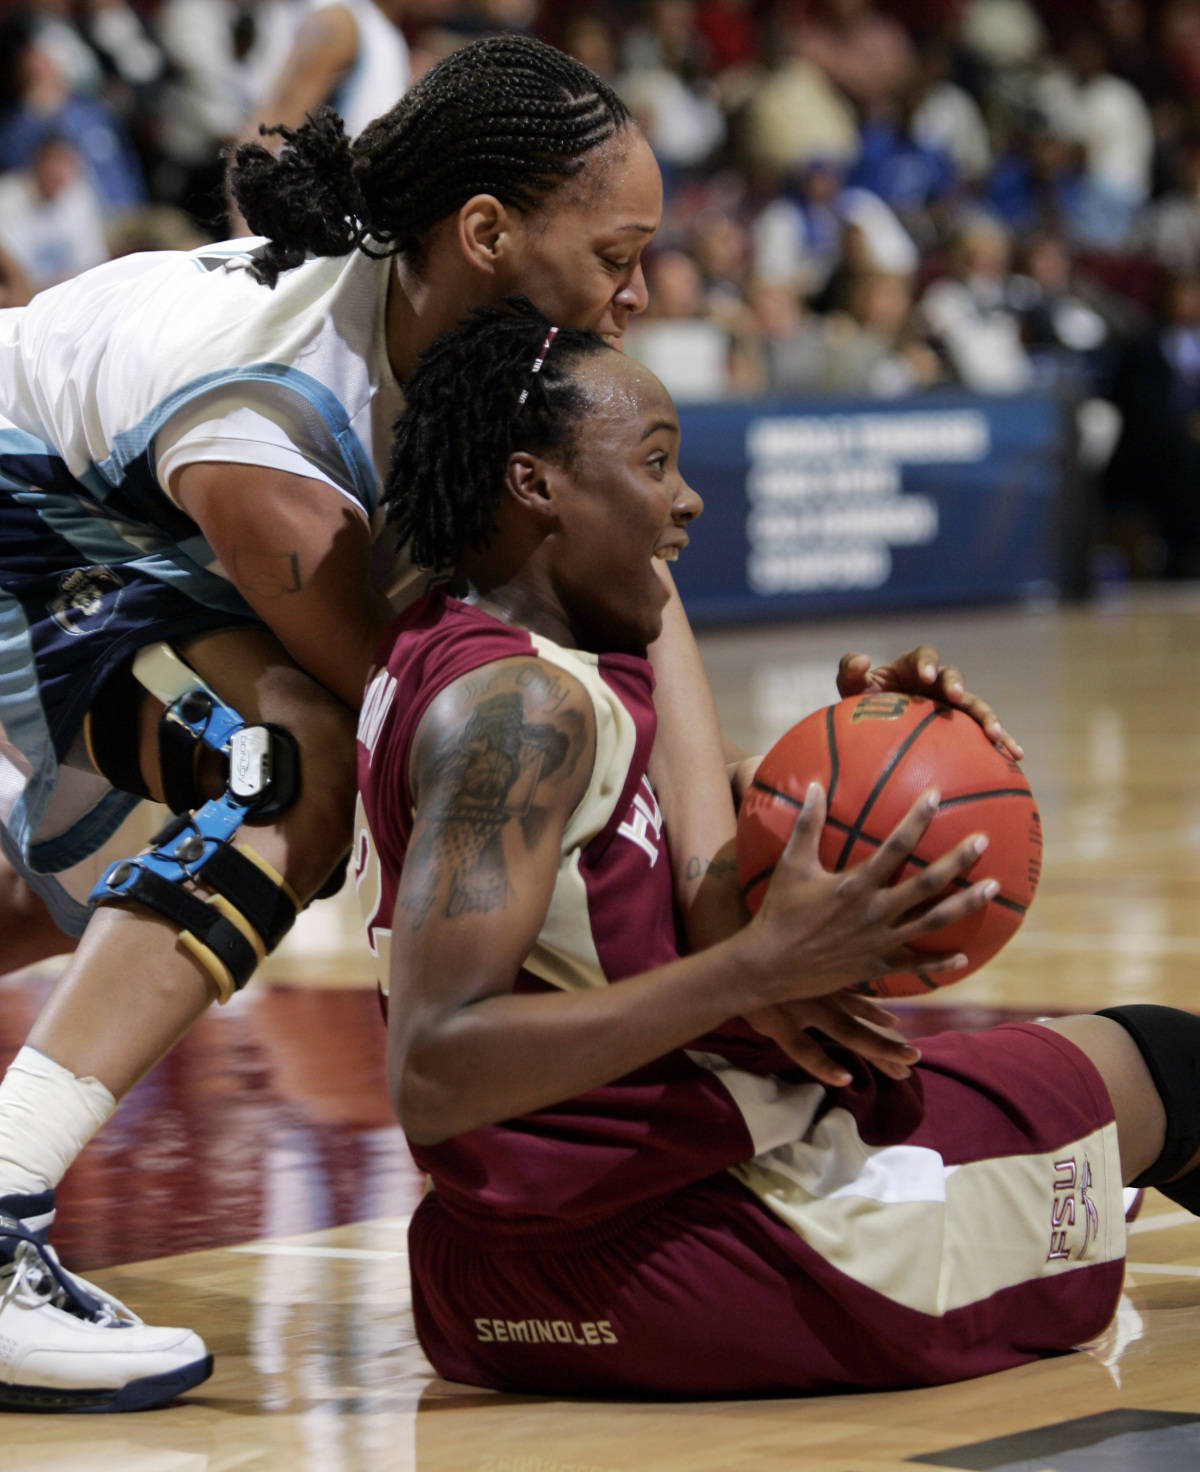 Florida State guard Alysha Harvin, right, and Old Dominion forward Tamara Ransberg battle for a loose ball in the first half of a first-round game of the West Regional of the NCAA women's basketball tournament, Saturday, March 17, 2007, in Stanford, Calif. (AP Photo/Paul Sakuma)